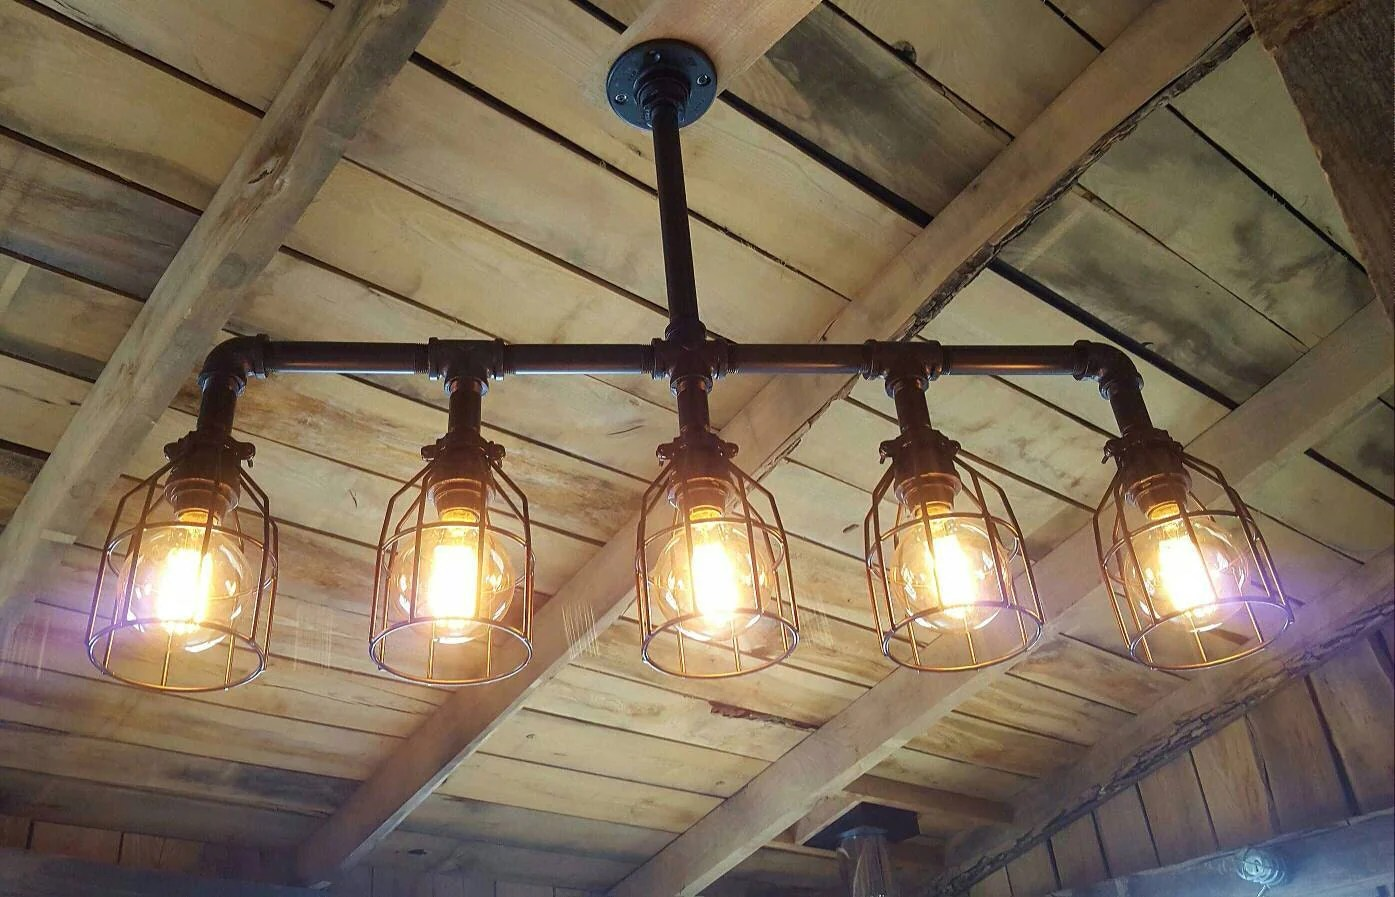 industrial lighting industrial kitchen light fixtures Rustic Industrial Lighting Chandelier Edison Bulb Iron Pipe Ceiling Light Modern Industrial Farm House Chandelier FREE SHIPPING